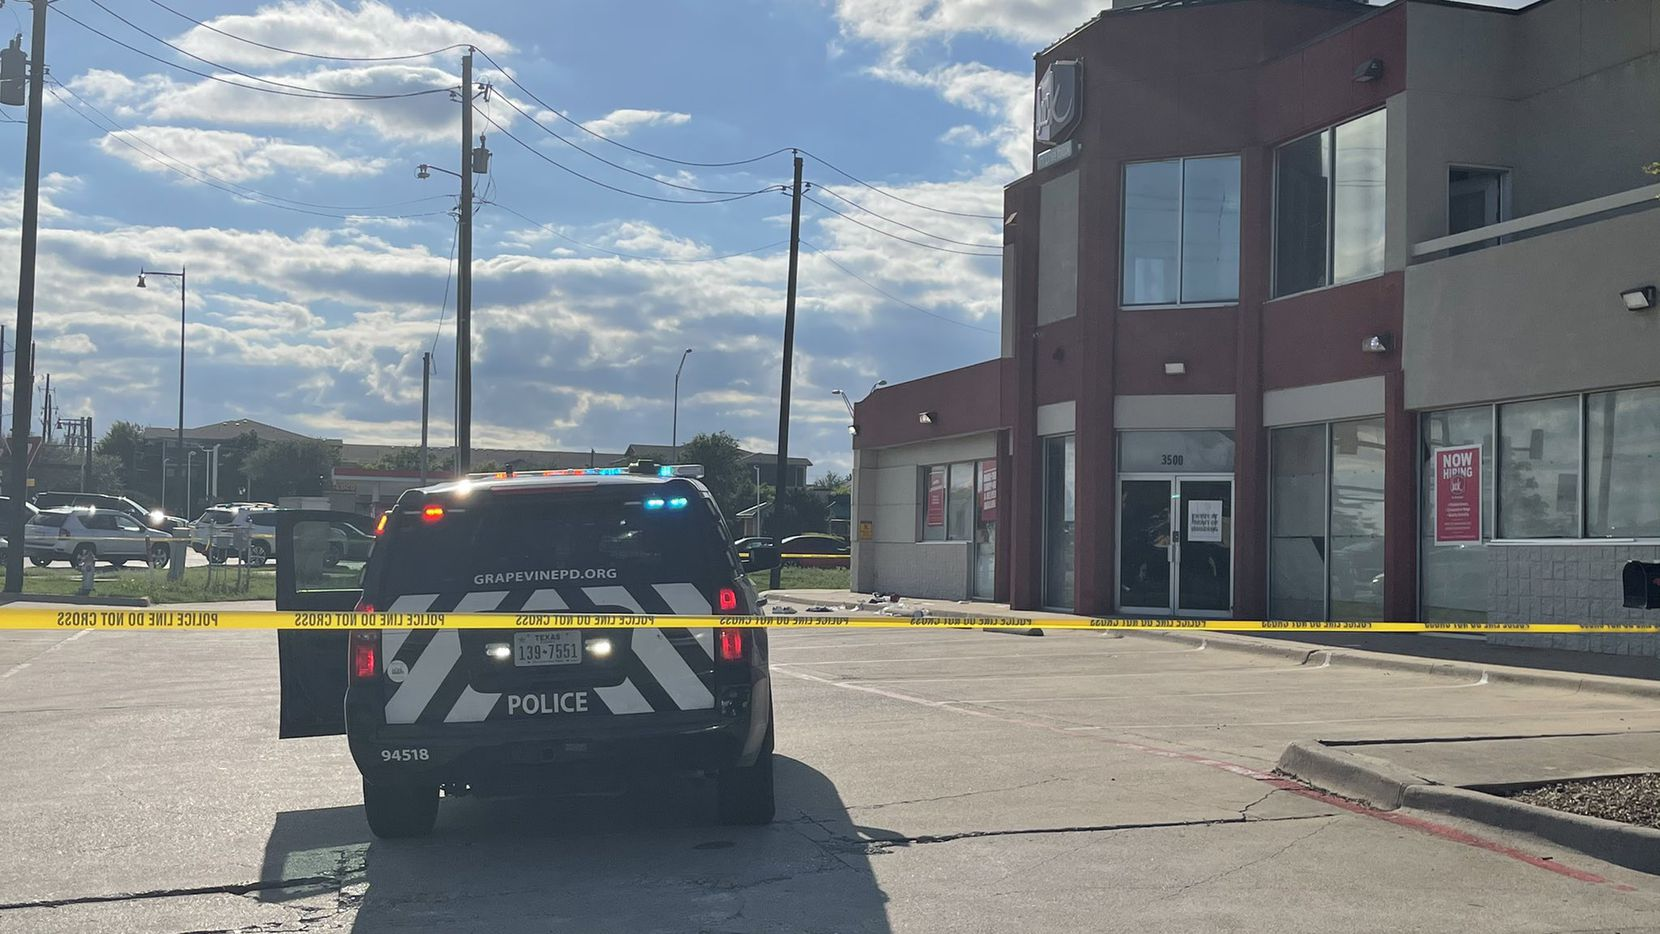 Police said everyone involved in Tuesday's shooting had been located.